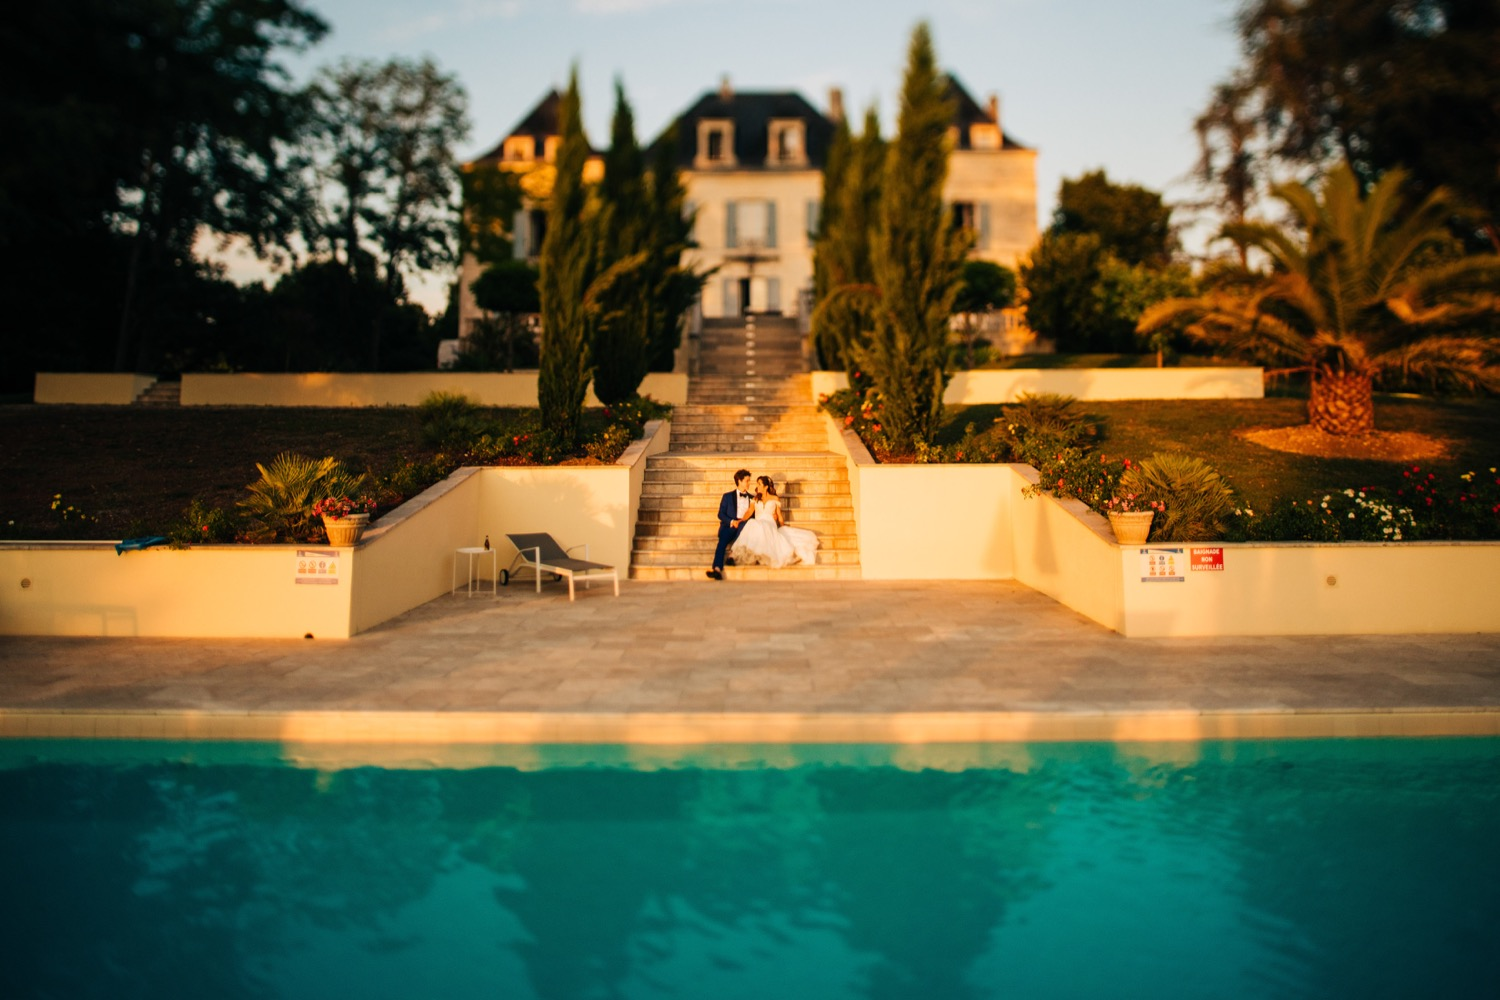 A bride and groom sit on the stairs between the outdoor pool and mansion at Domaine La Fauconnie, a wedding venue in France, as Magic Wedding Photographer takes their photo.